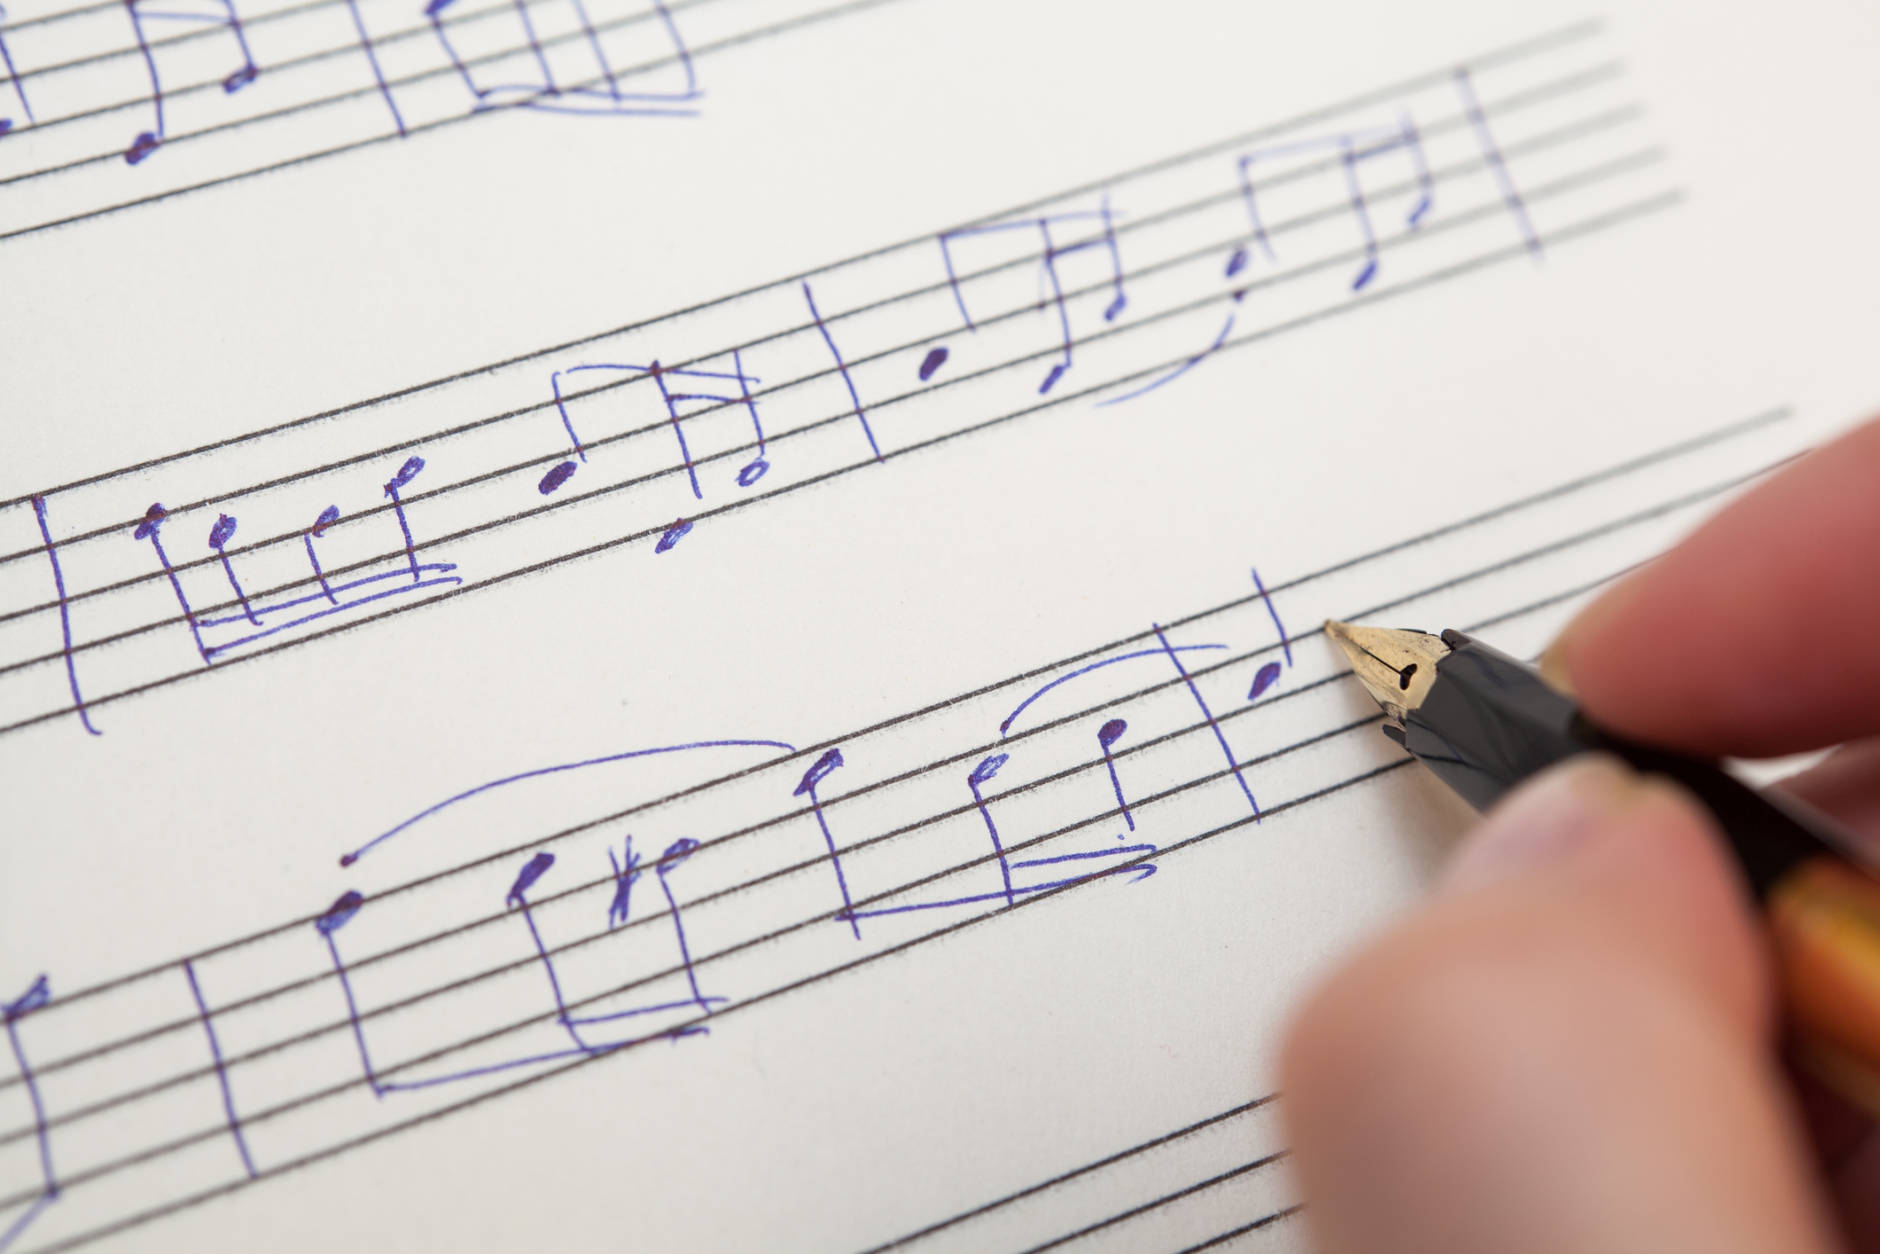 Hand pointing with pen to music book with handwritten notes